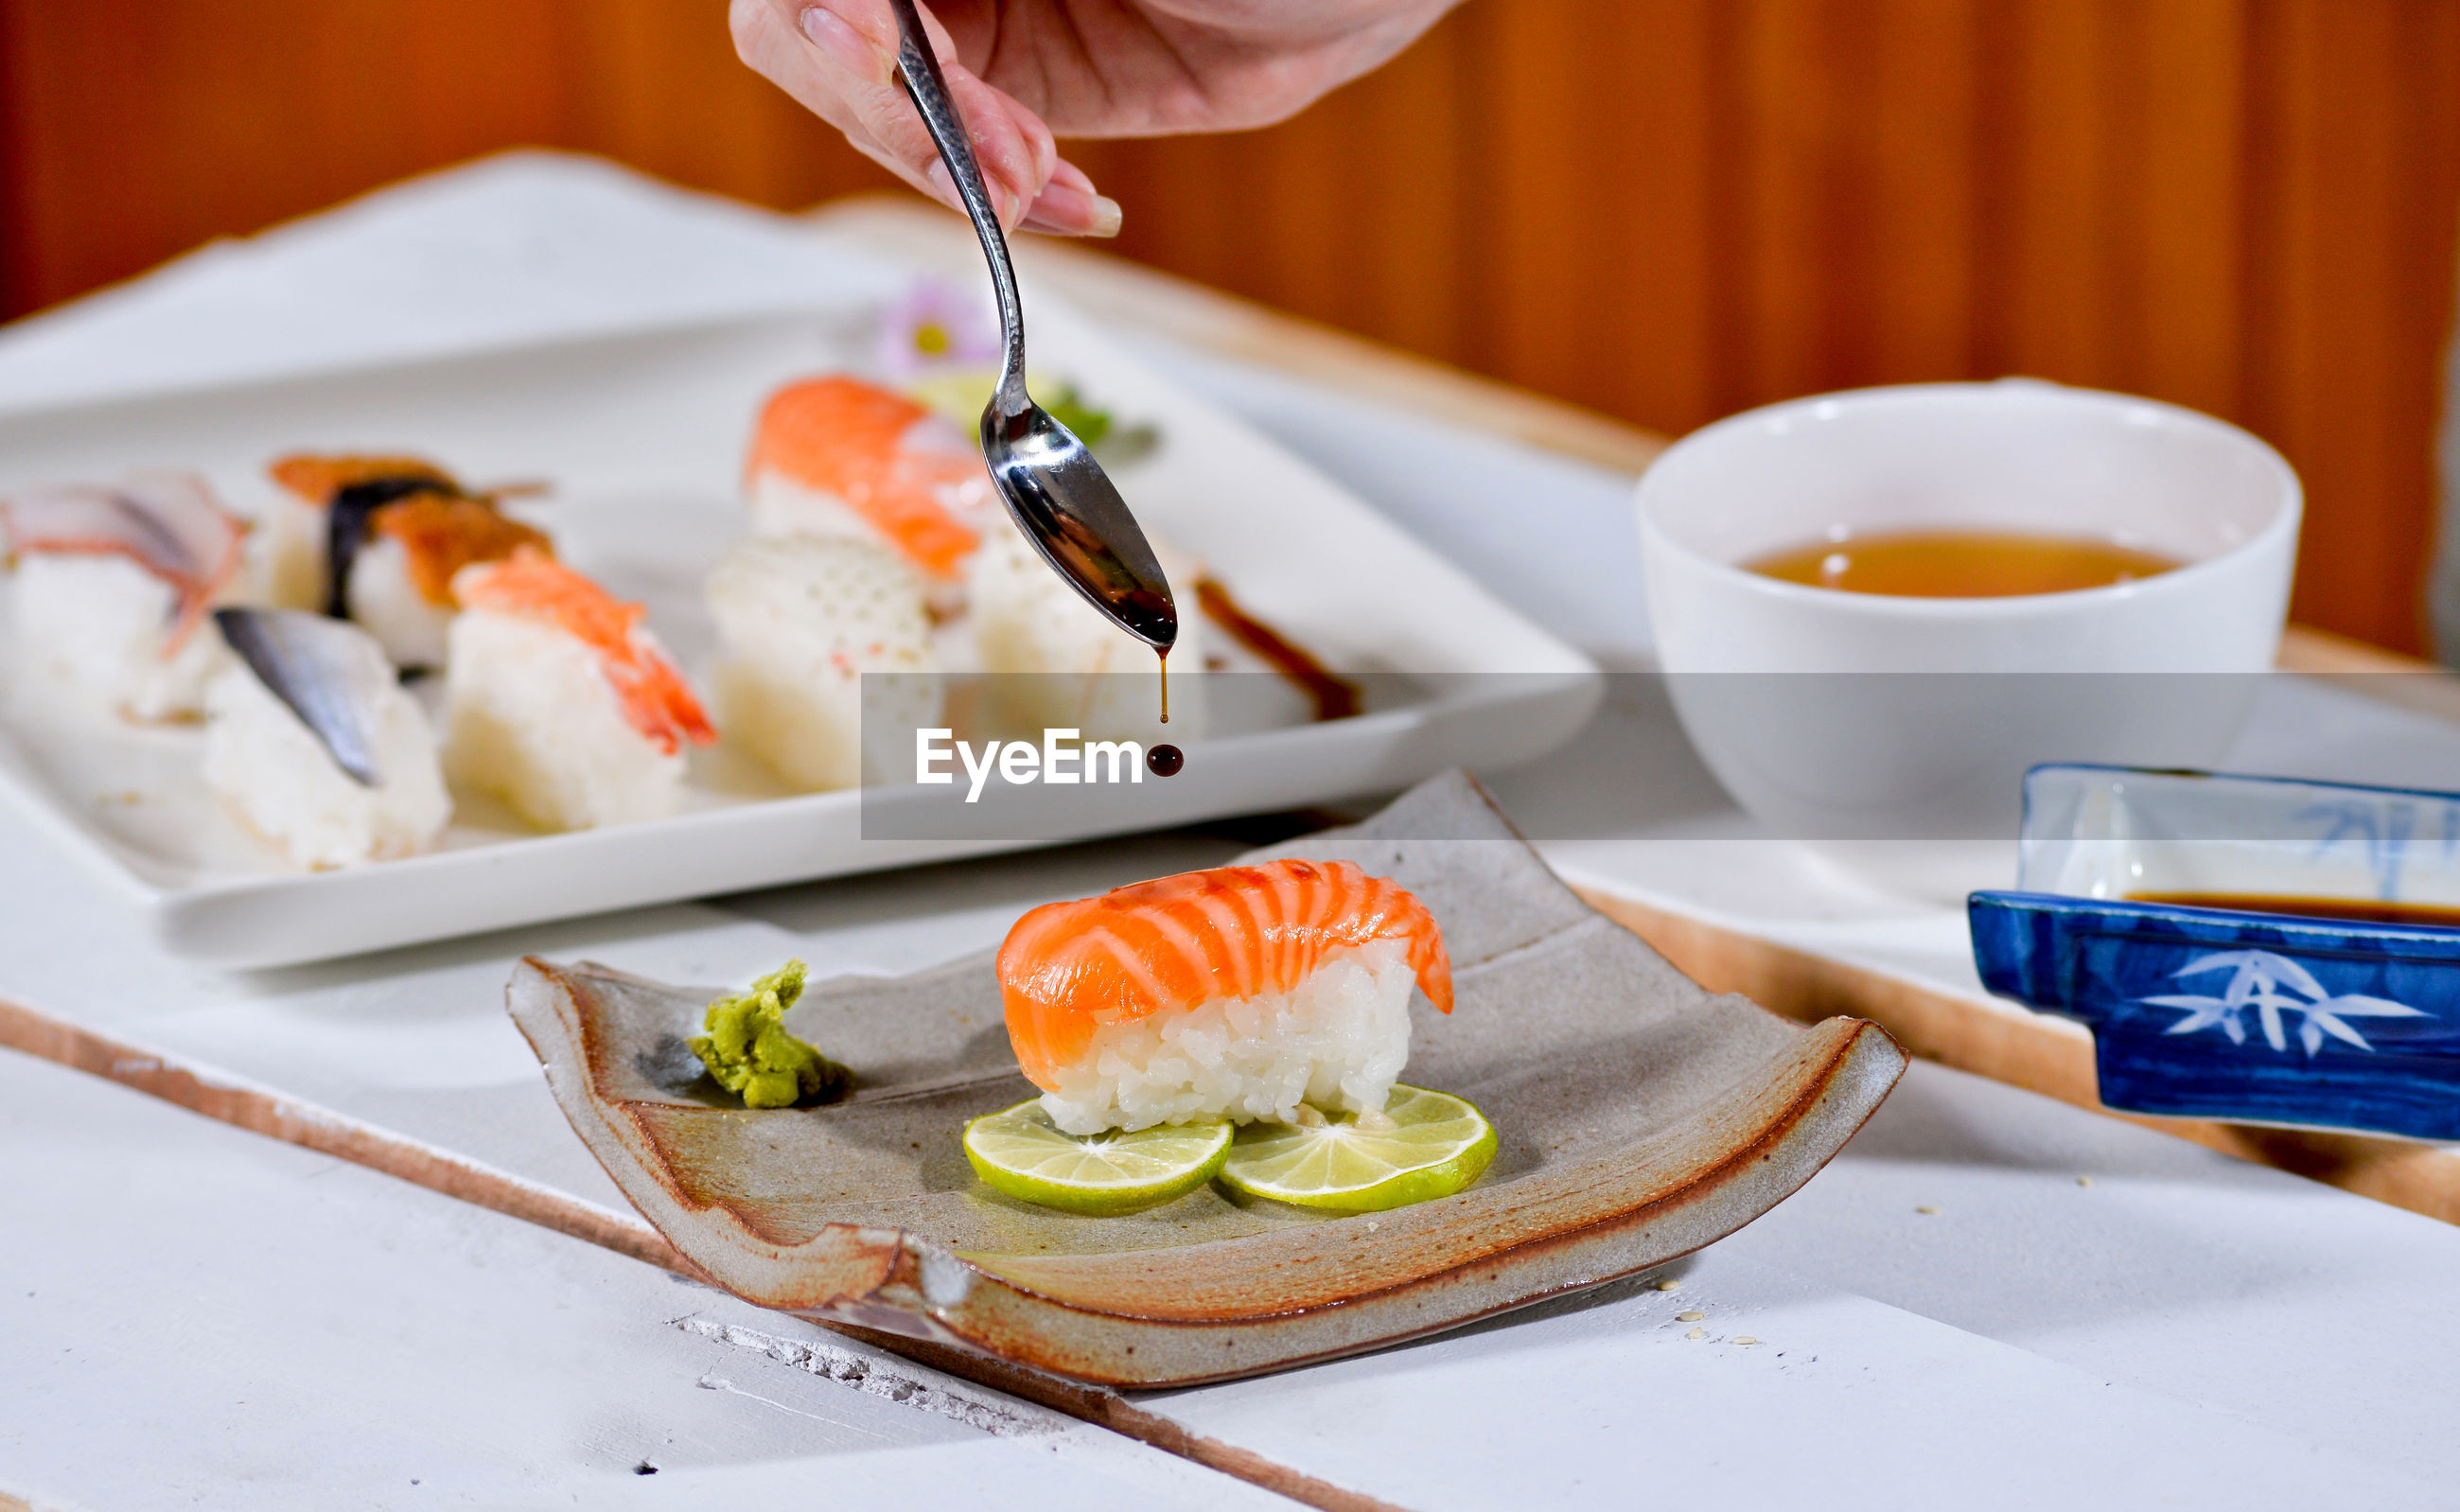 Cropped image of hand pouring sauce over sushi on table